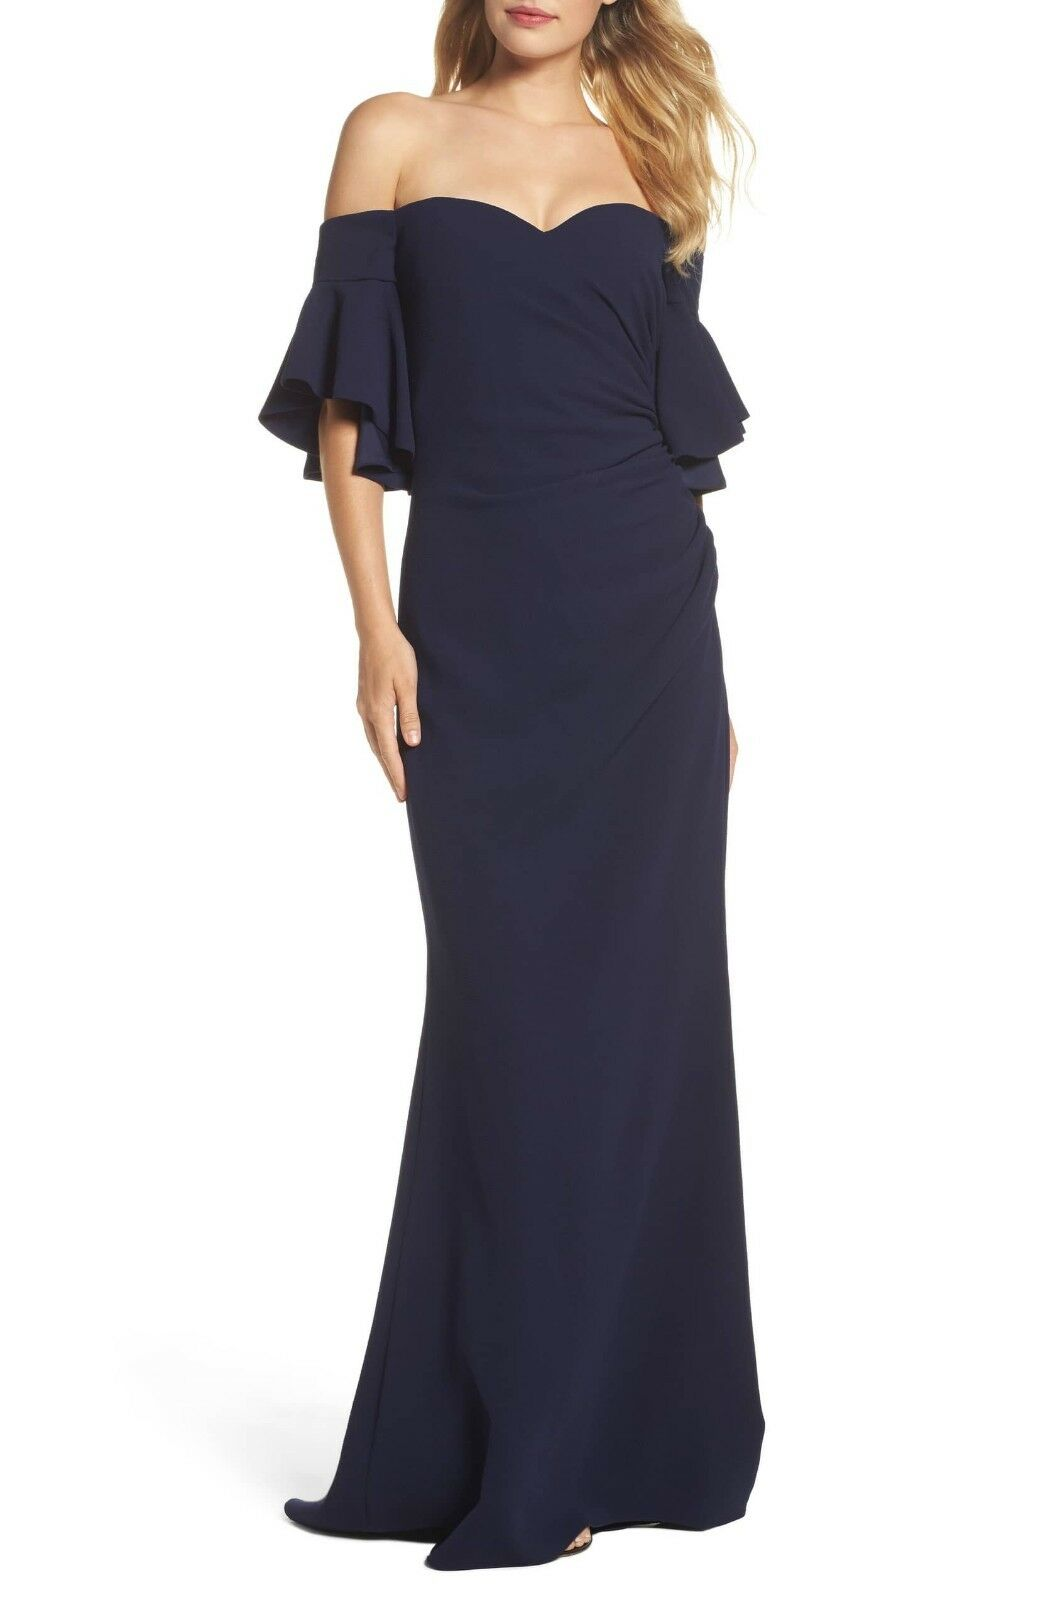 BADGLEY MISCHKA Navy bluee Pebble Crepe Off Shoulder Sweetheart Mermaid Gown 8 M